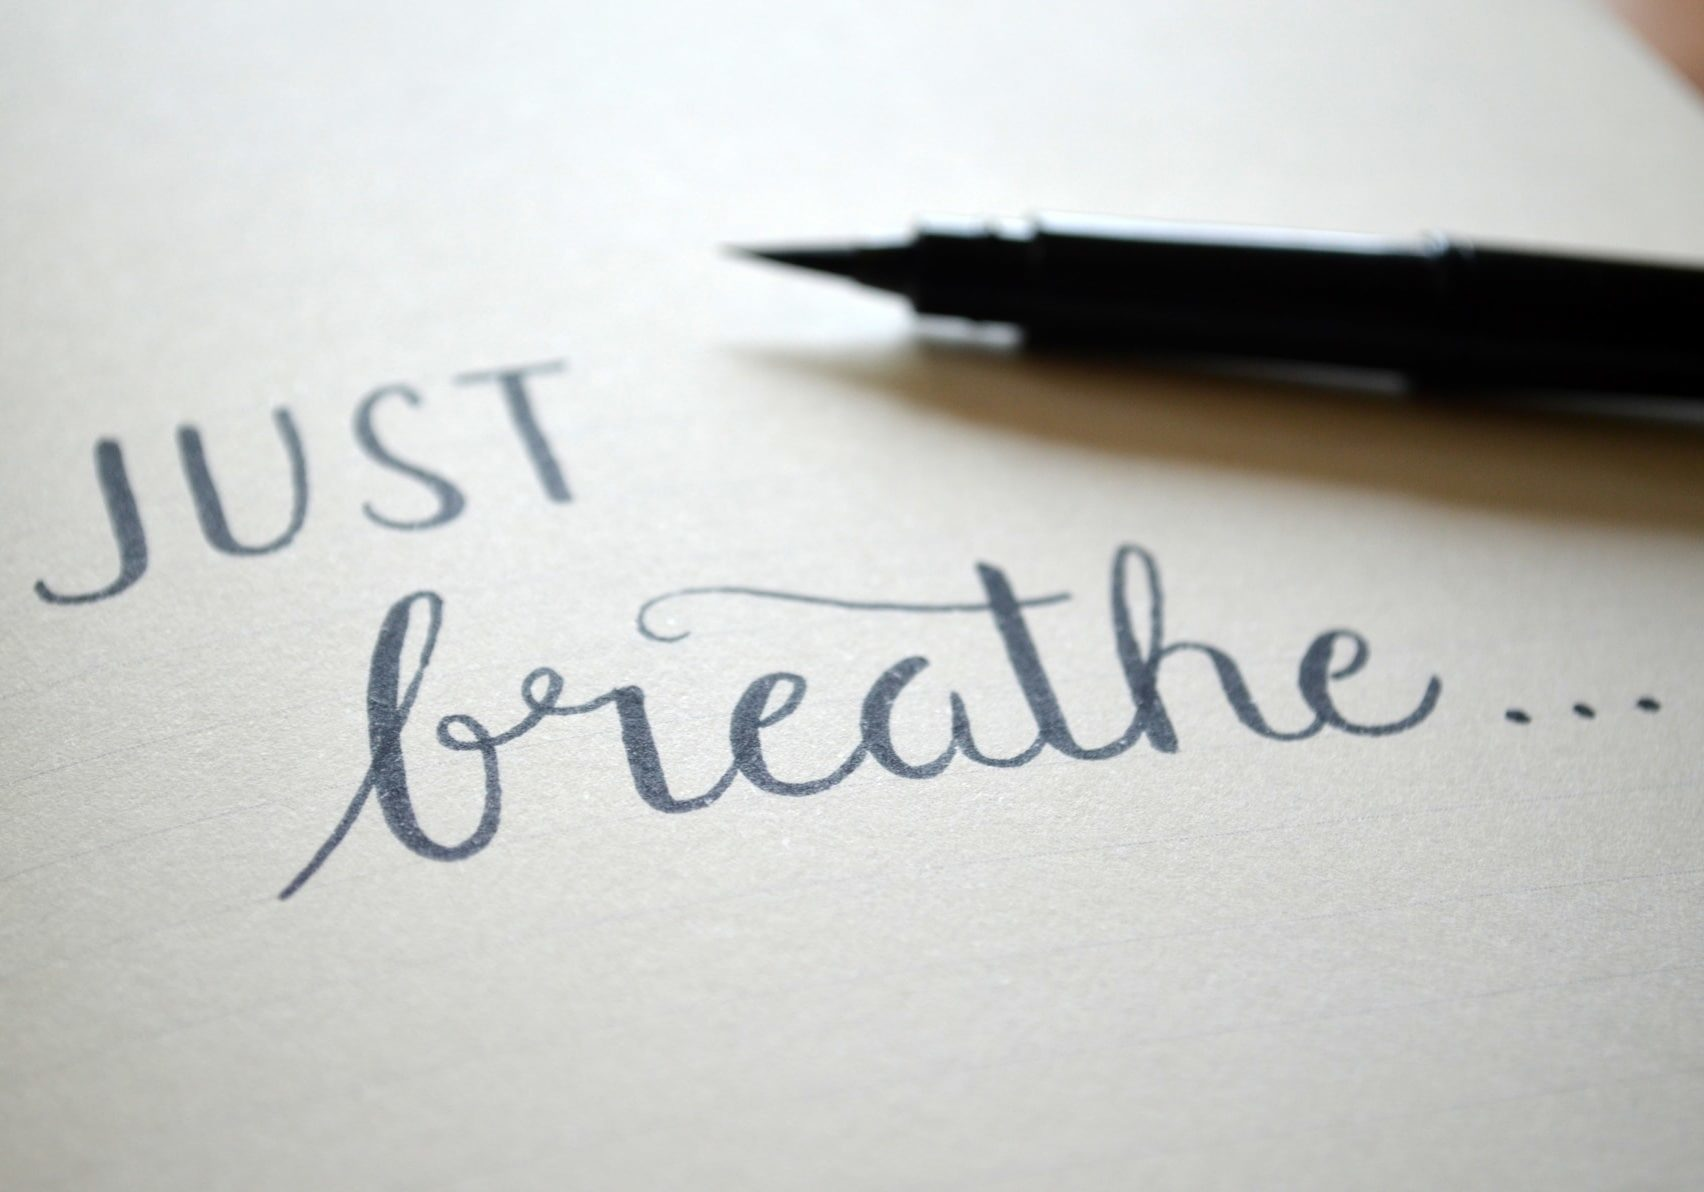 JUST BREATHE handwritten on notepad